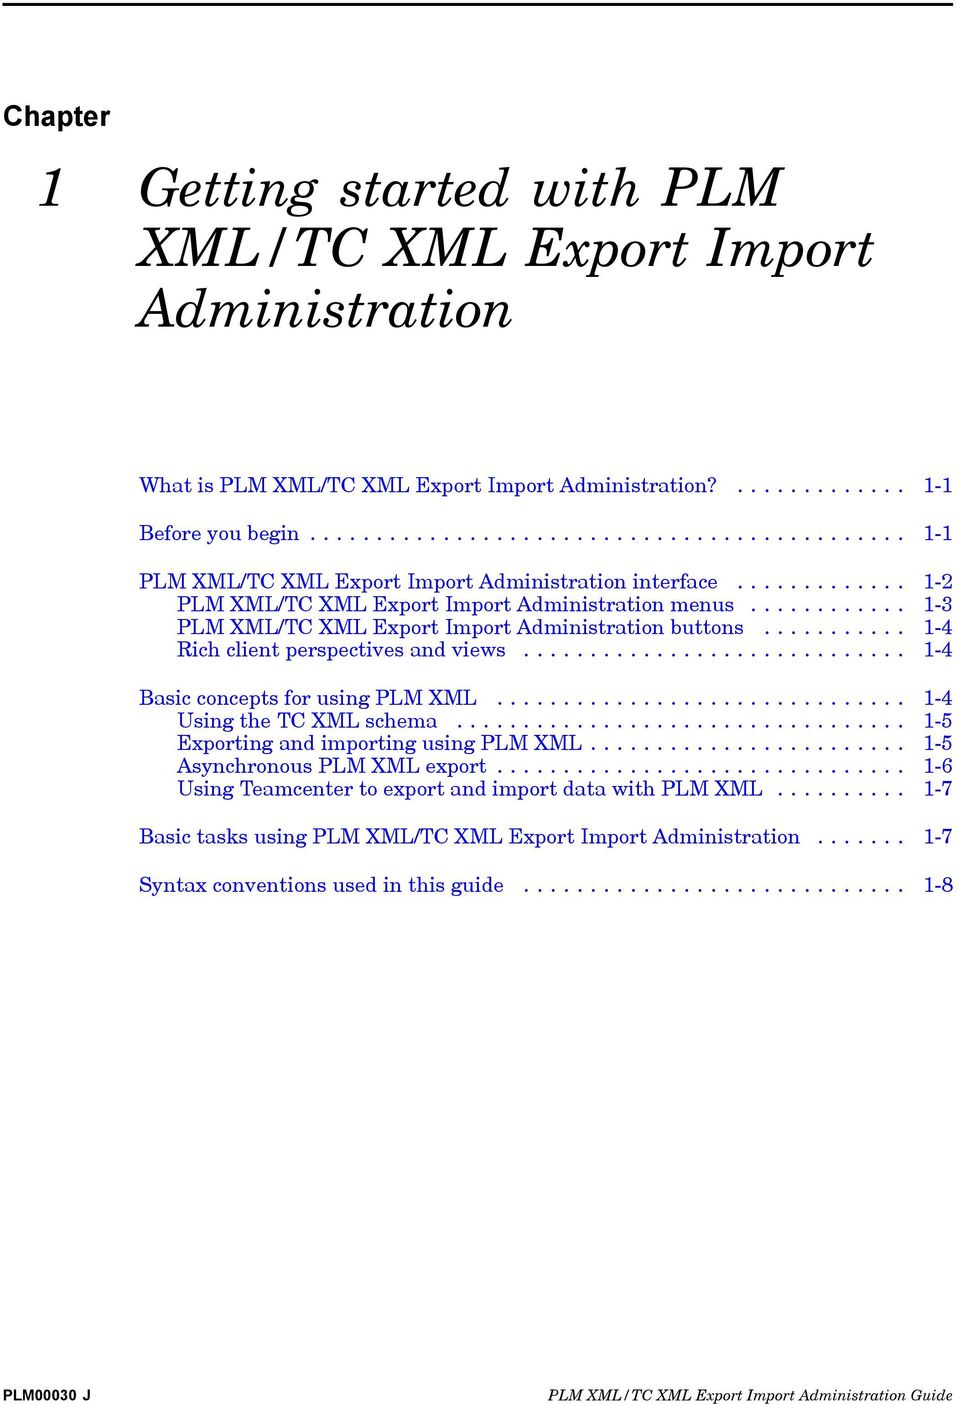 ........... 1-3 PLM XML/TC XML Export Import Administration buttons........... 1-4 Rich client perspectives and views............................. 1-4 Basic concepts for using PLM XML.